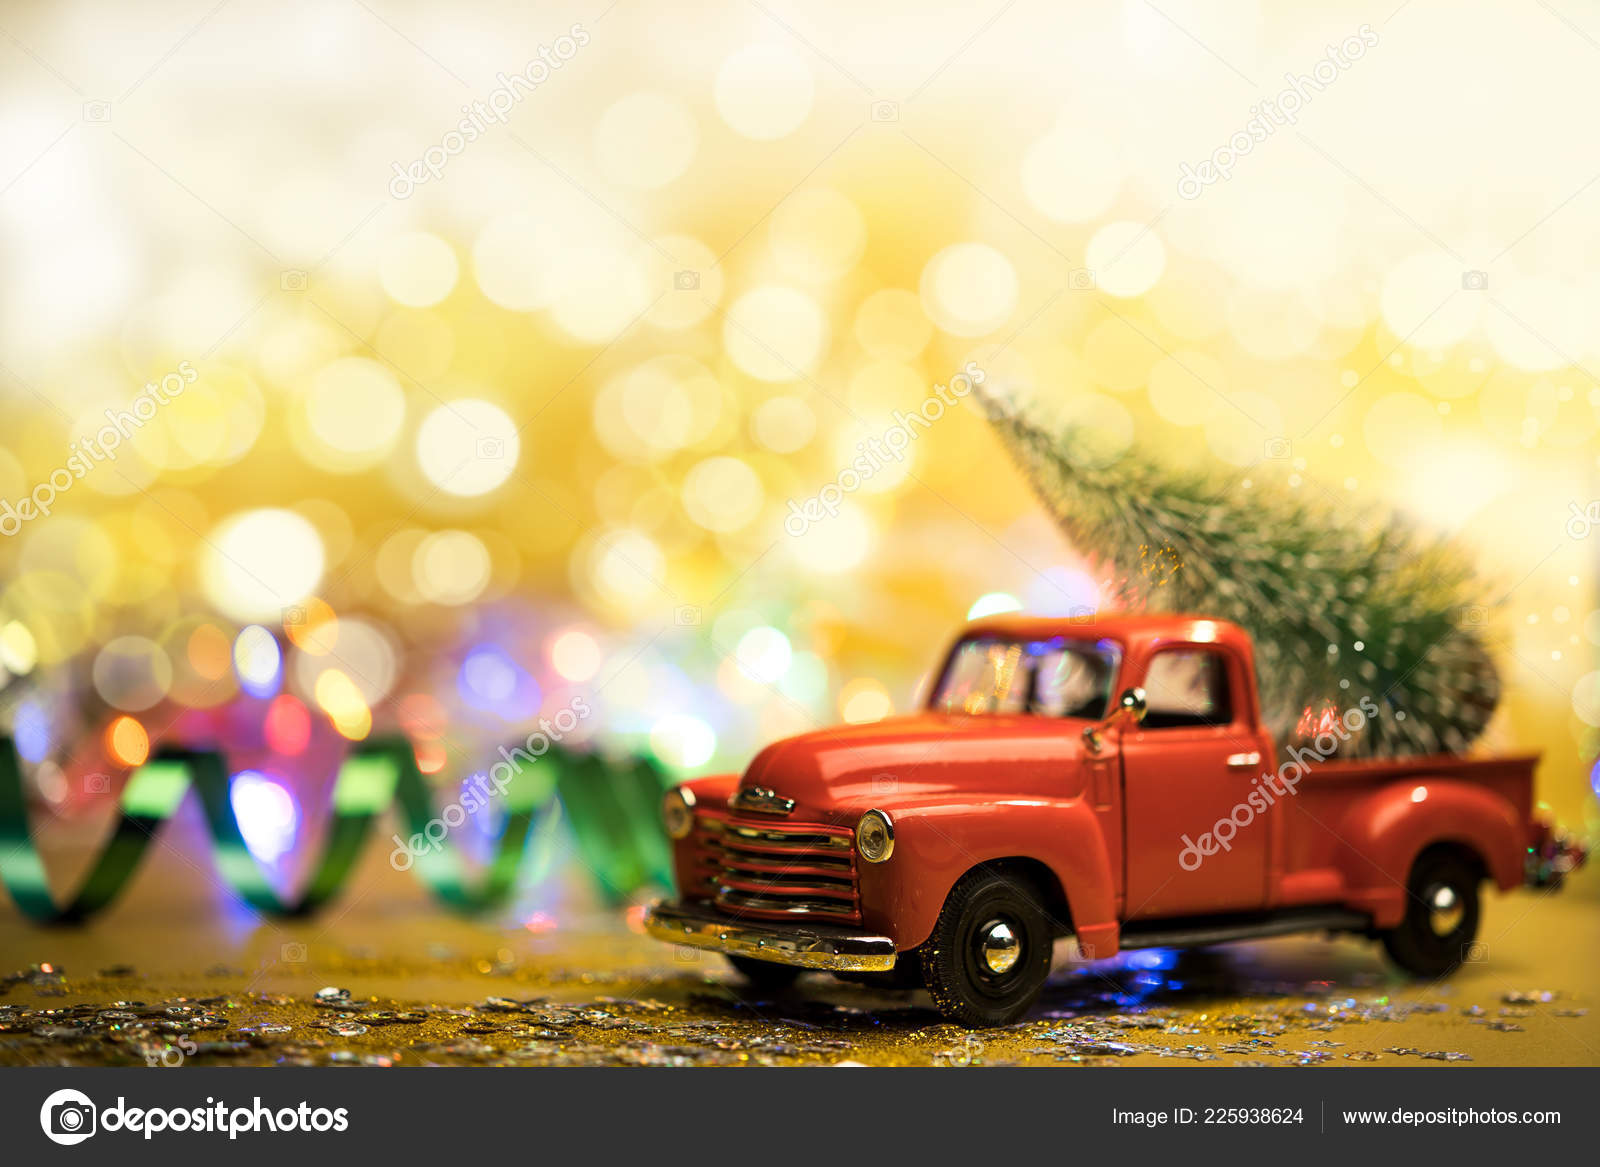 Christmas Red Truck.Christmas Red Truck With A Christmas Tree Stock Photo